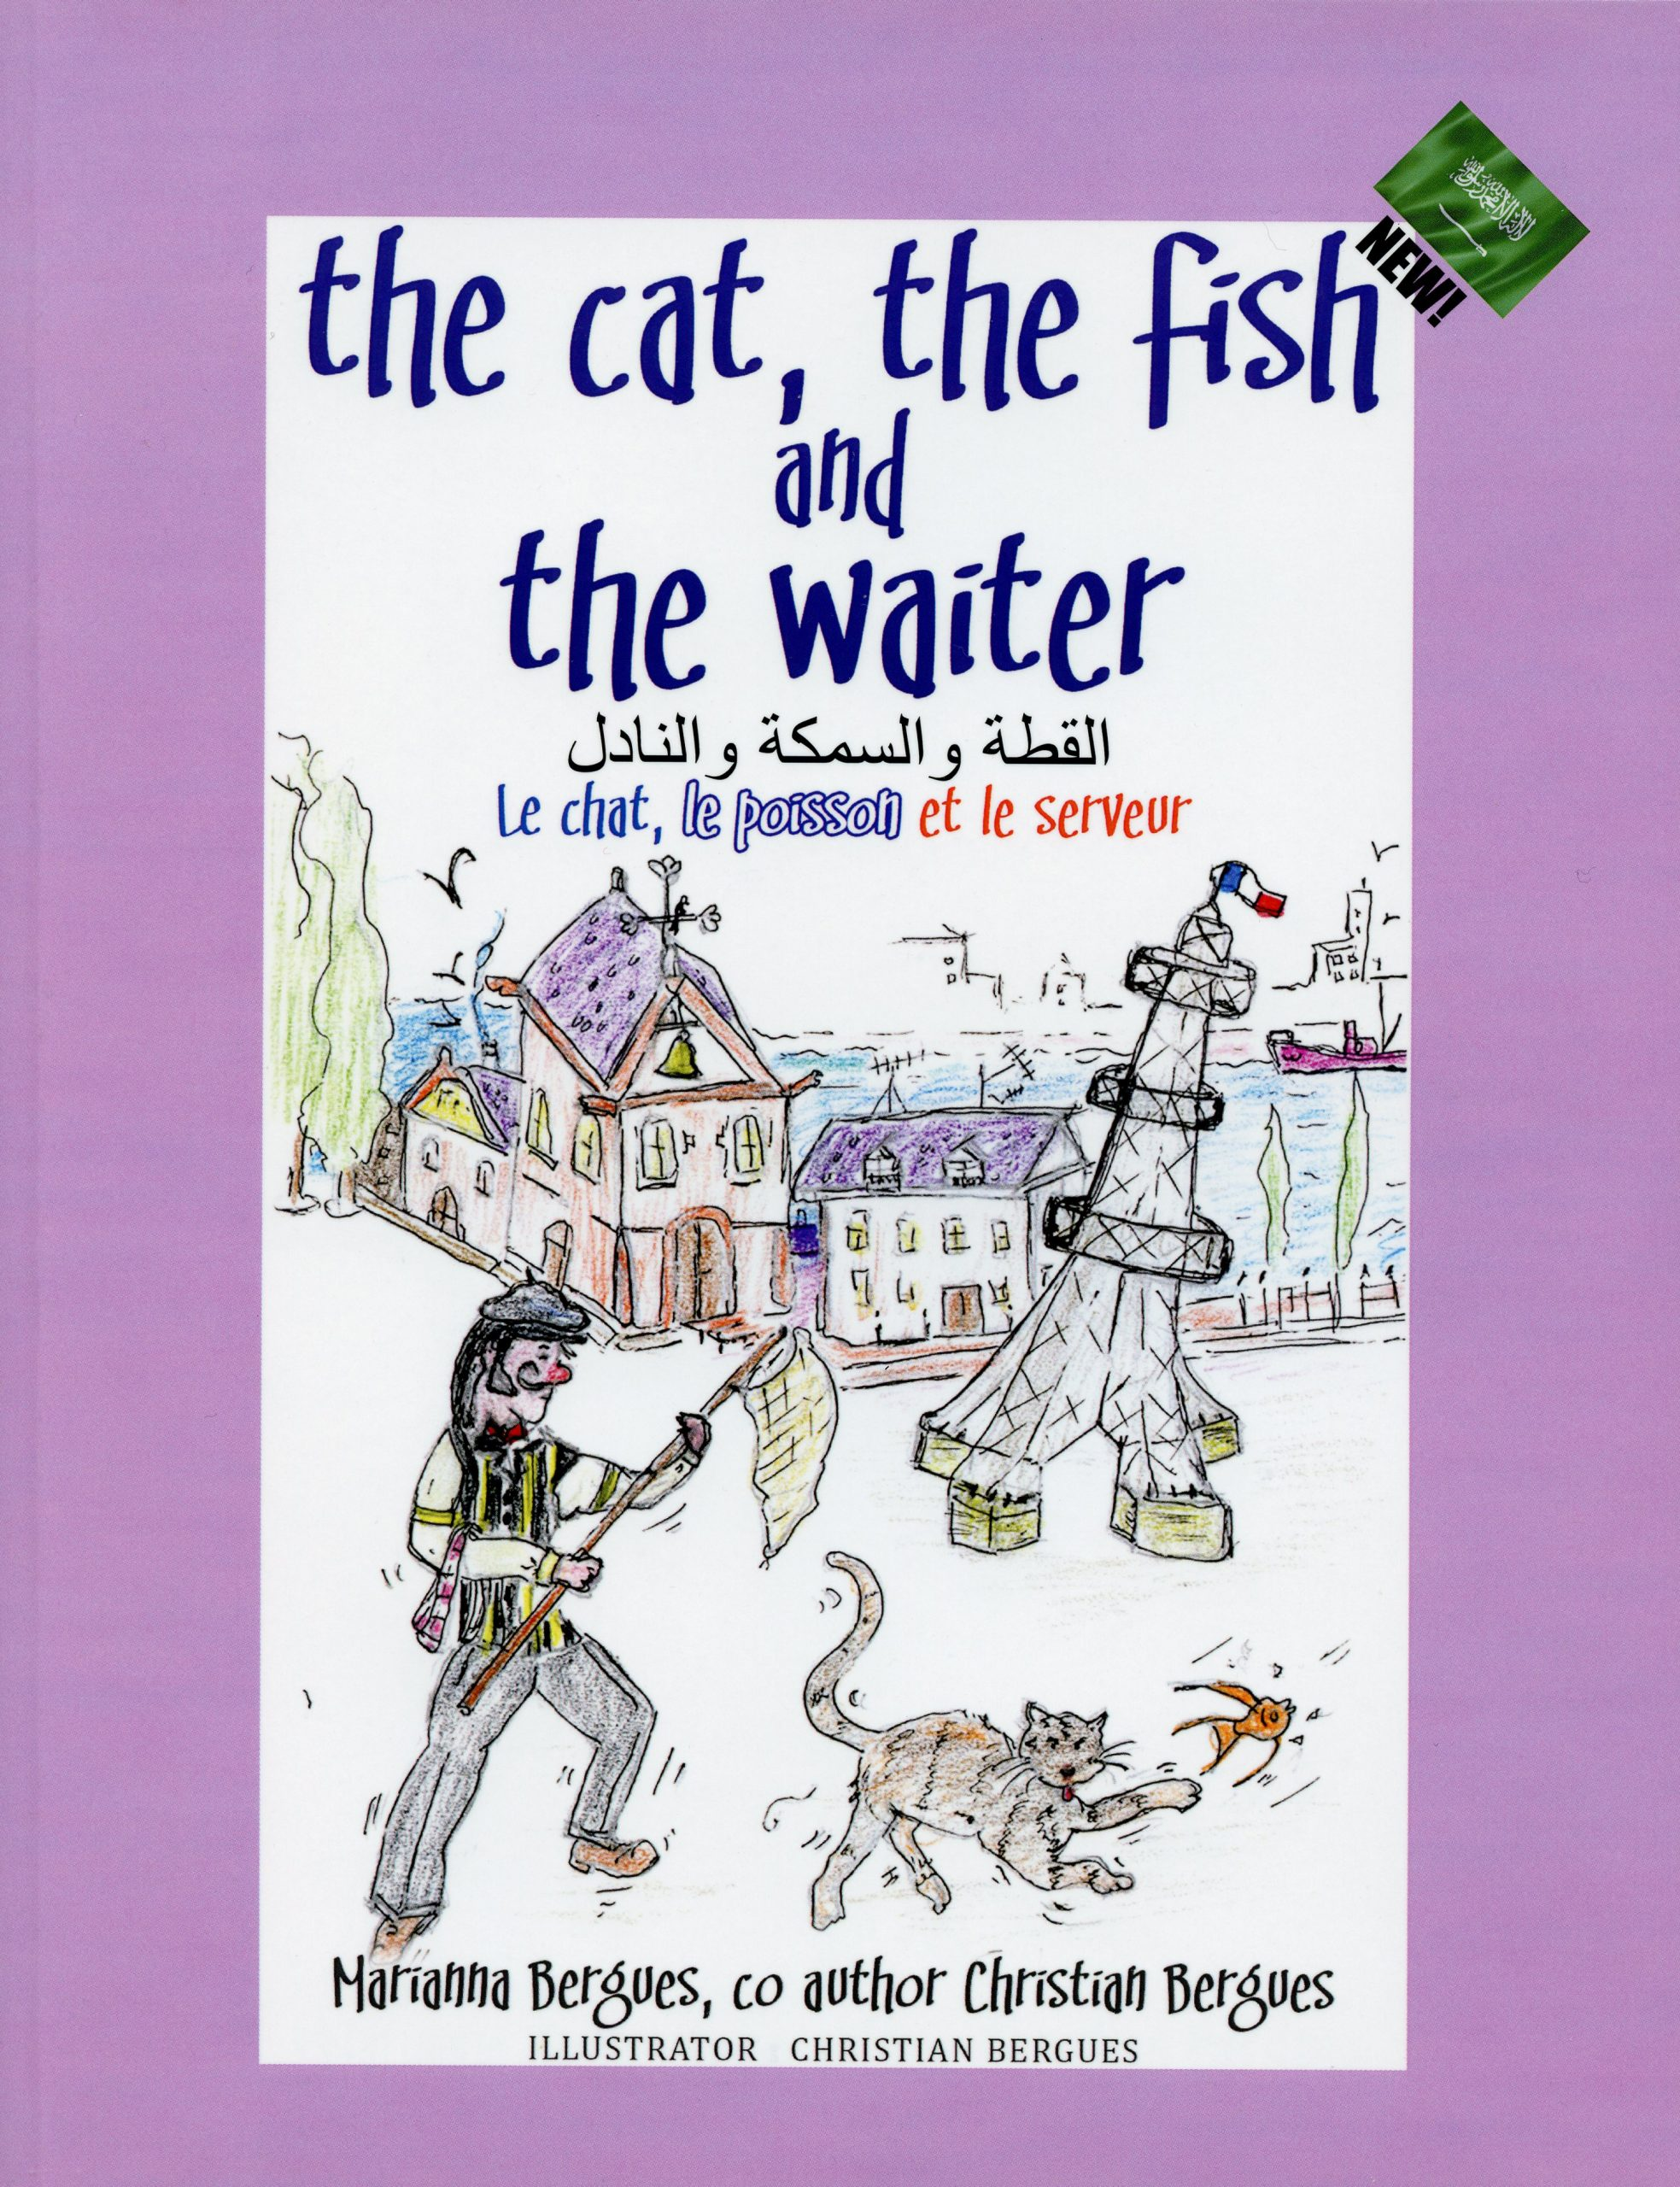 The cat the fish and the waiter (English, Arabic and French Edition) old